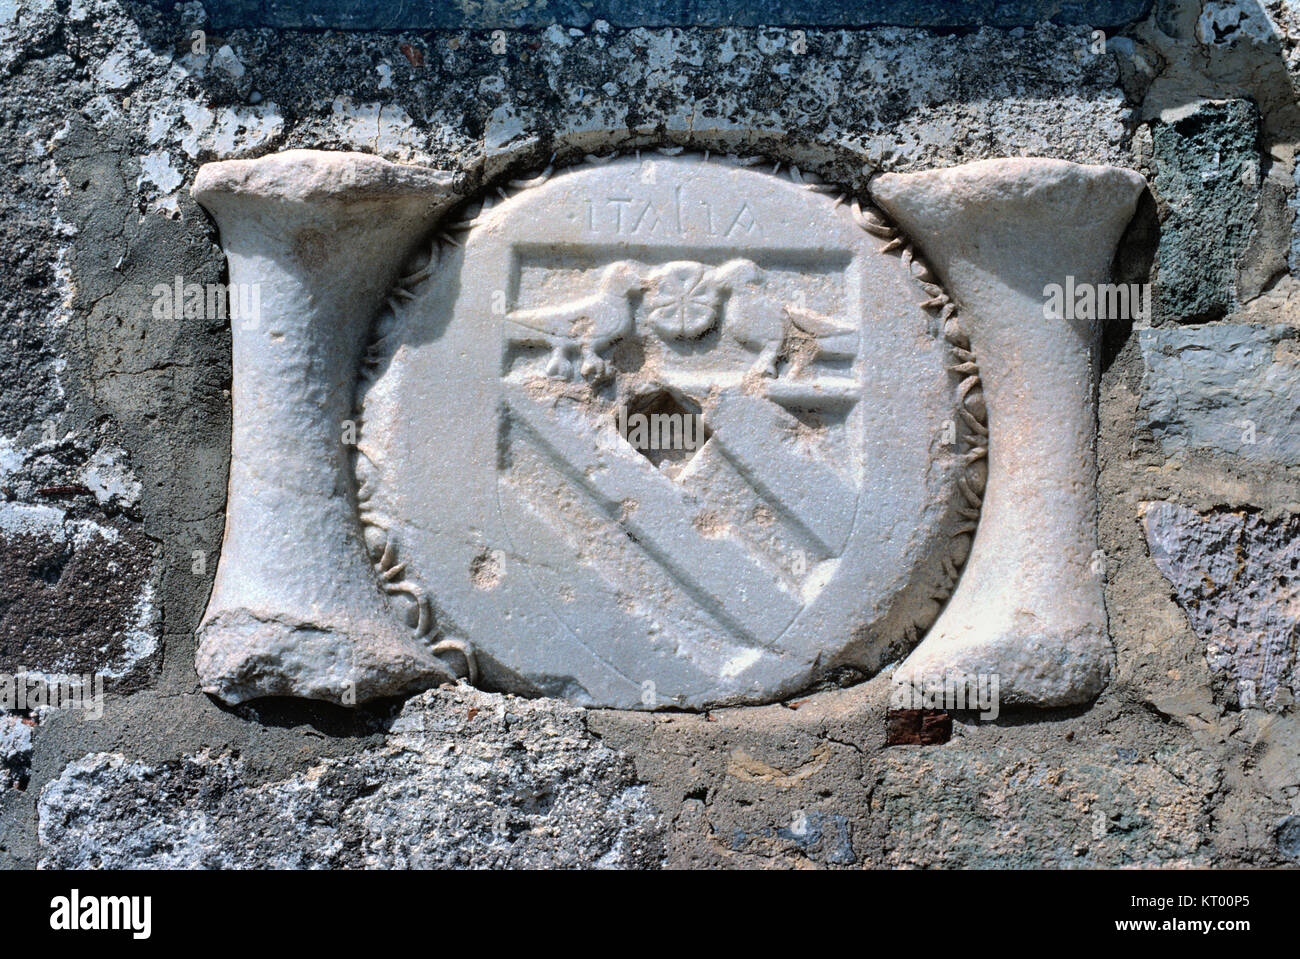 Italian Coat of Arms, on Knights of Saint John Crusader Castle, c15th, Bodrum, Turkey - Stock Image